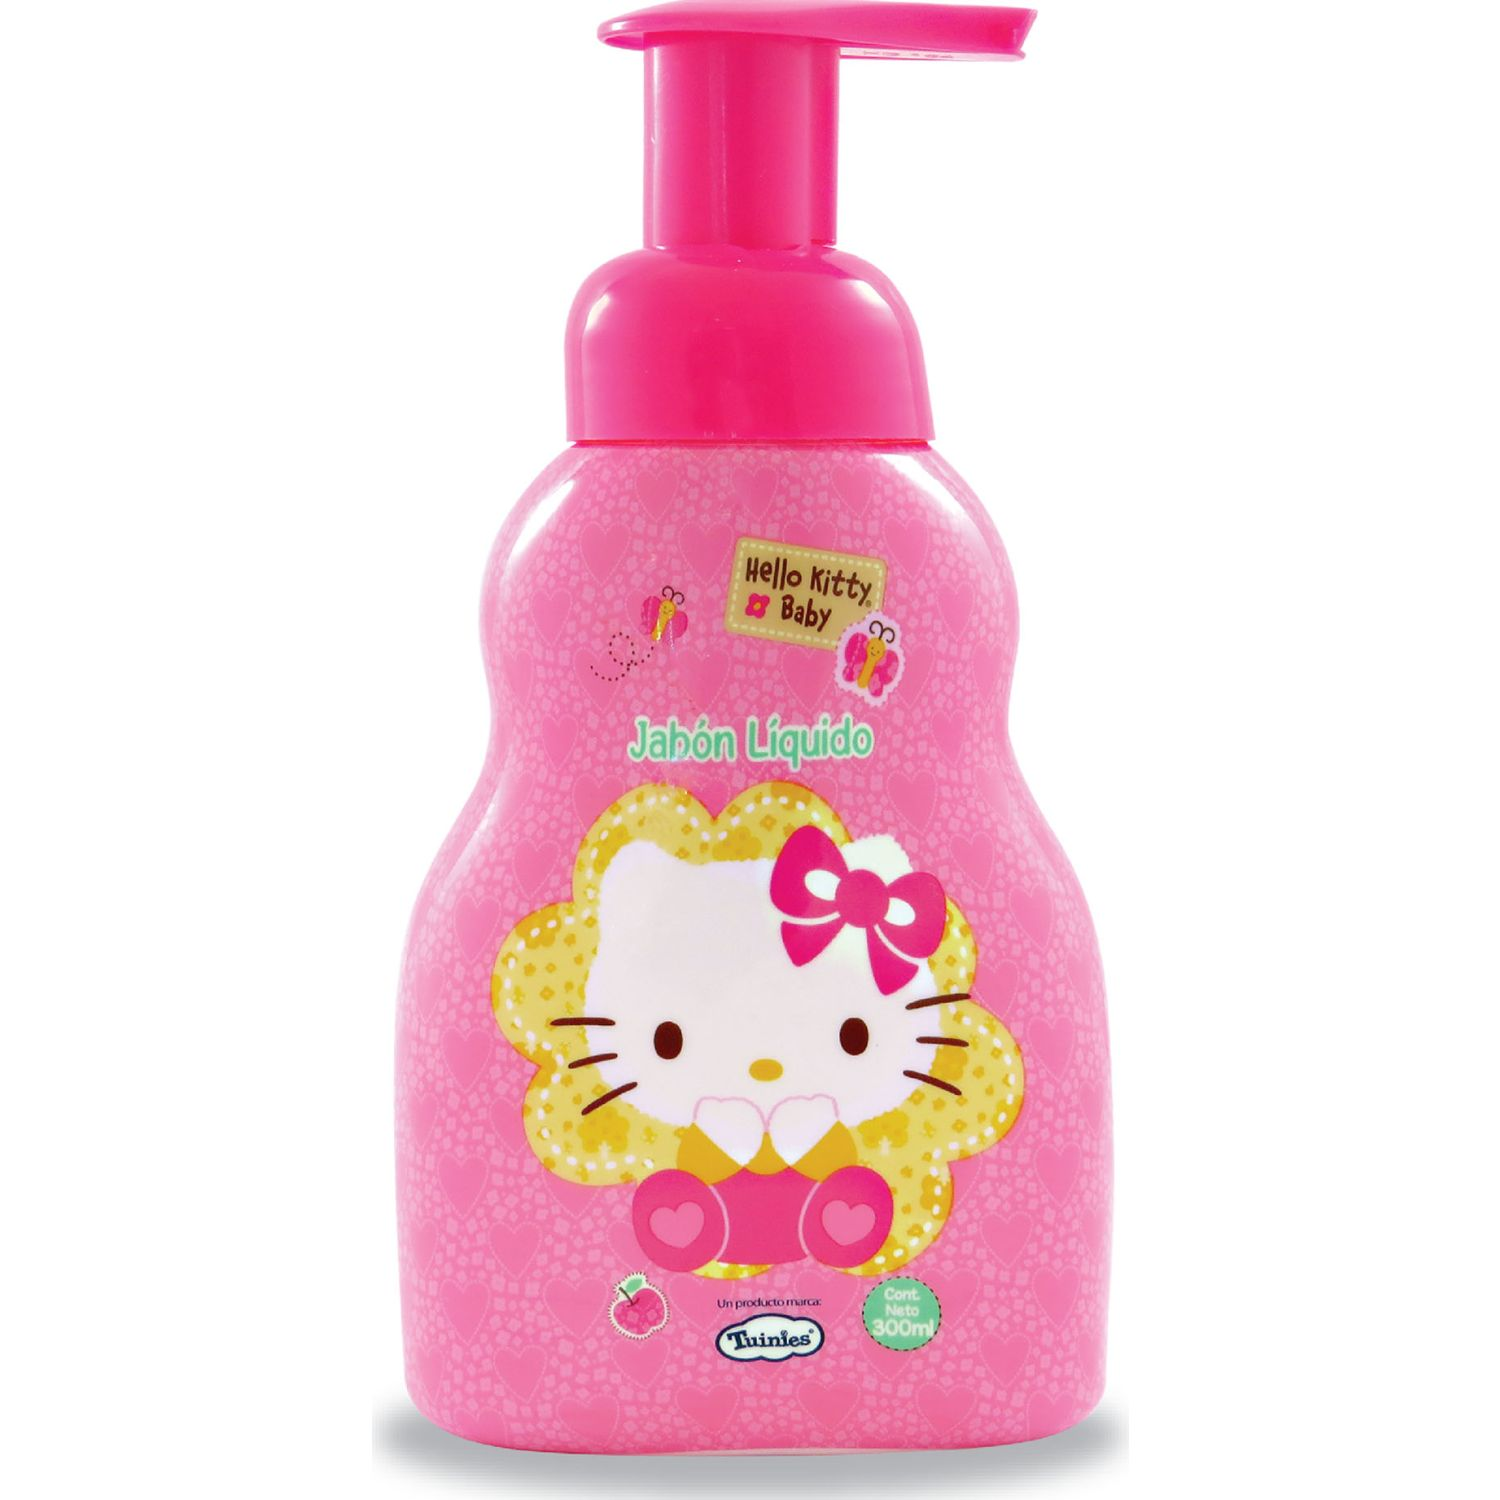 Hello Kitty Jabon Liquido 300ml Hello Kitty Varios Limpiadores corporales